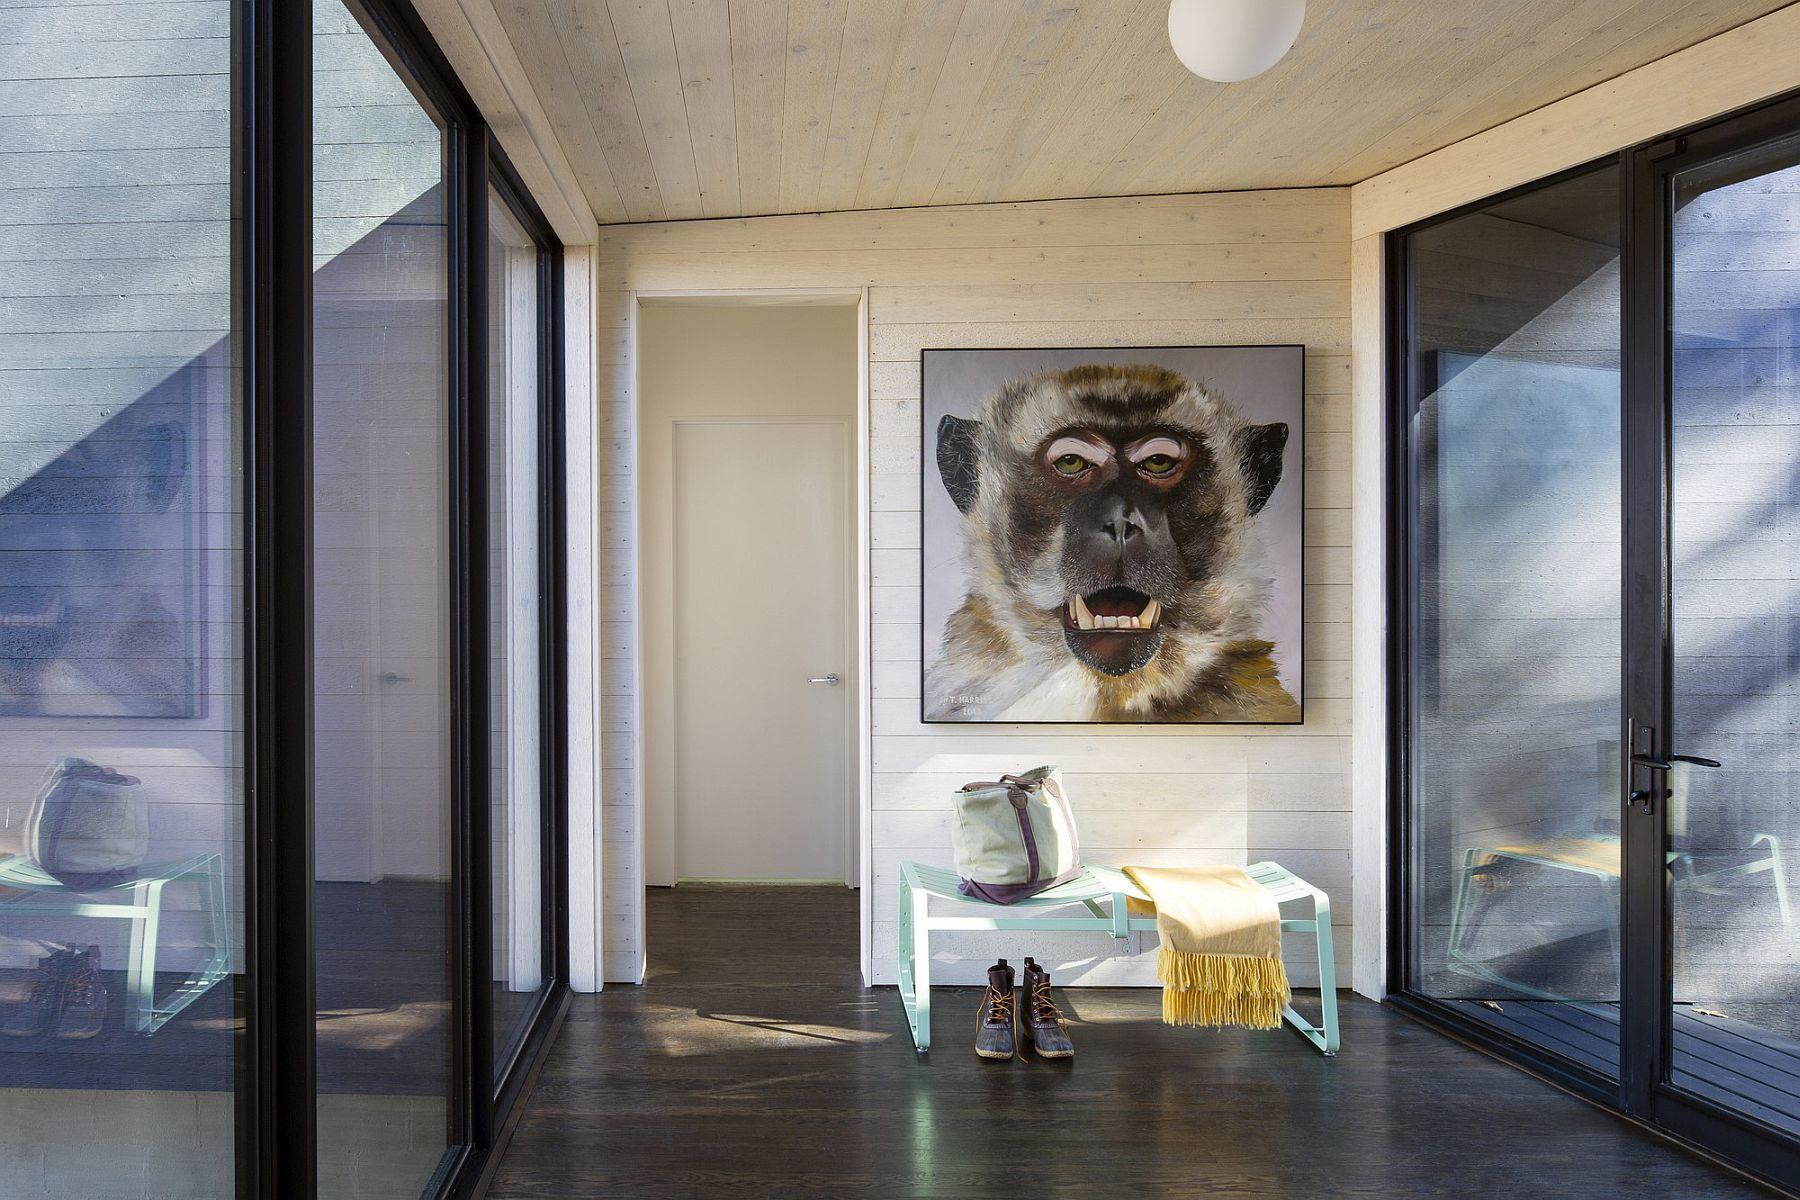 Sliding glass doors bring the outdoors inside this River House